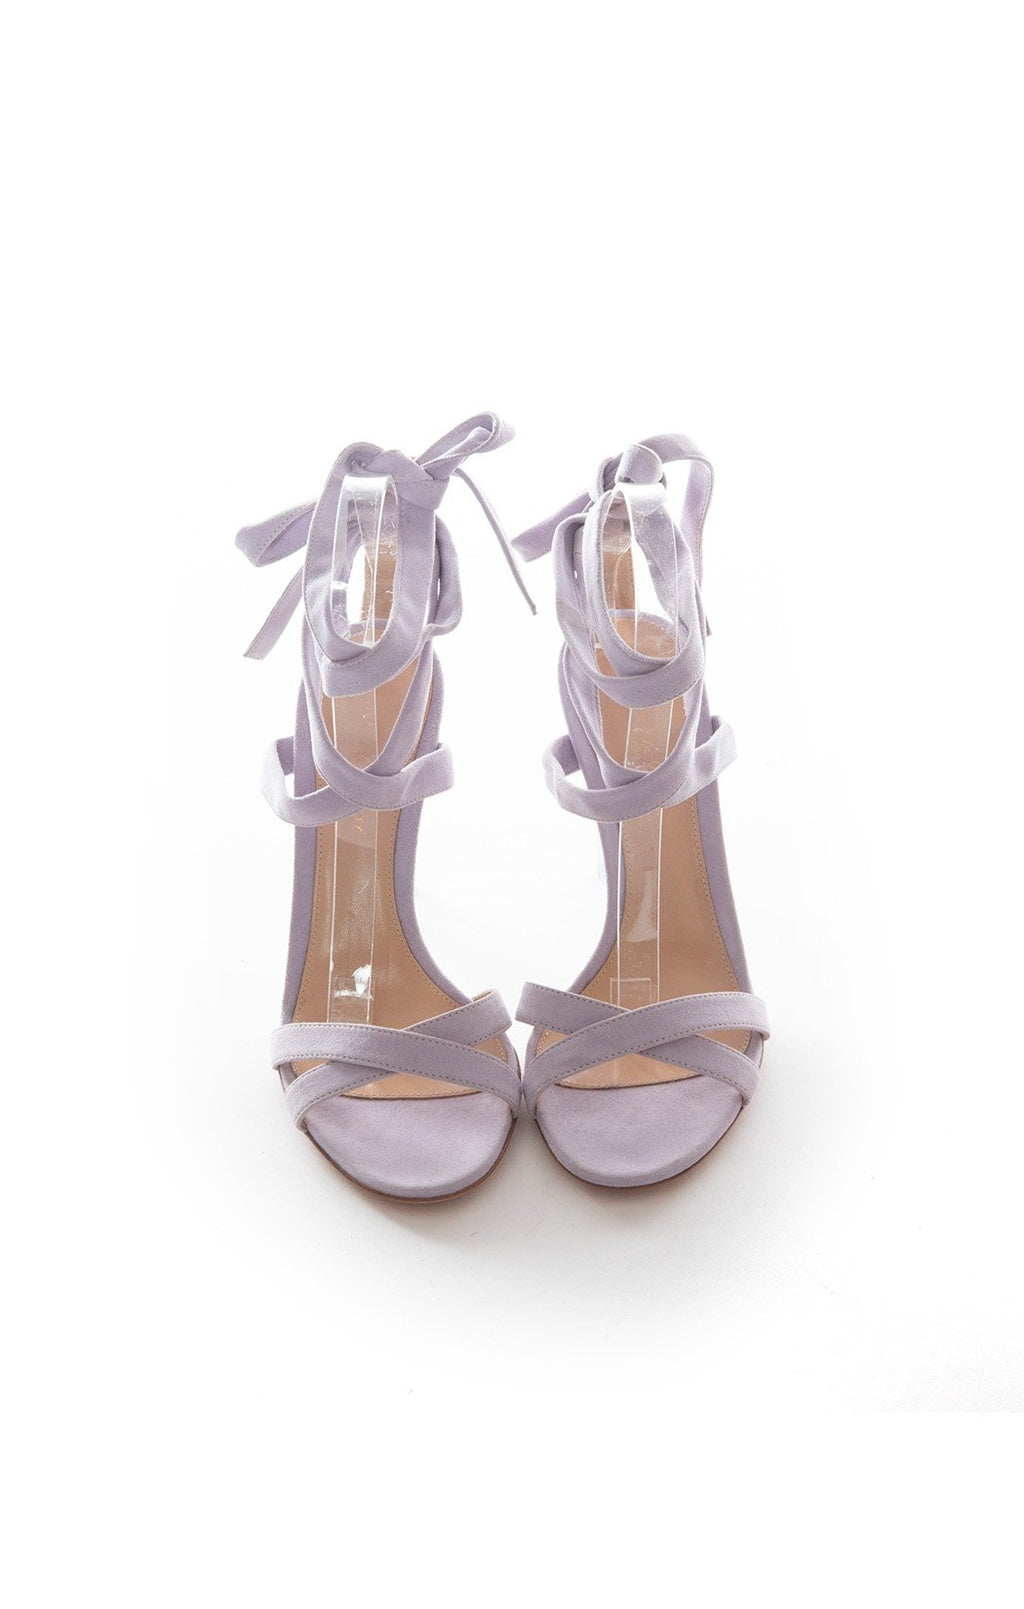 "Lavender suede lace up ankle strap sandal with lavender lucite block 4.25"" heel"